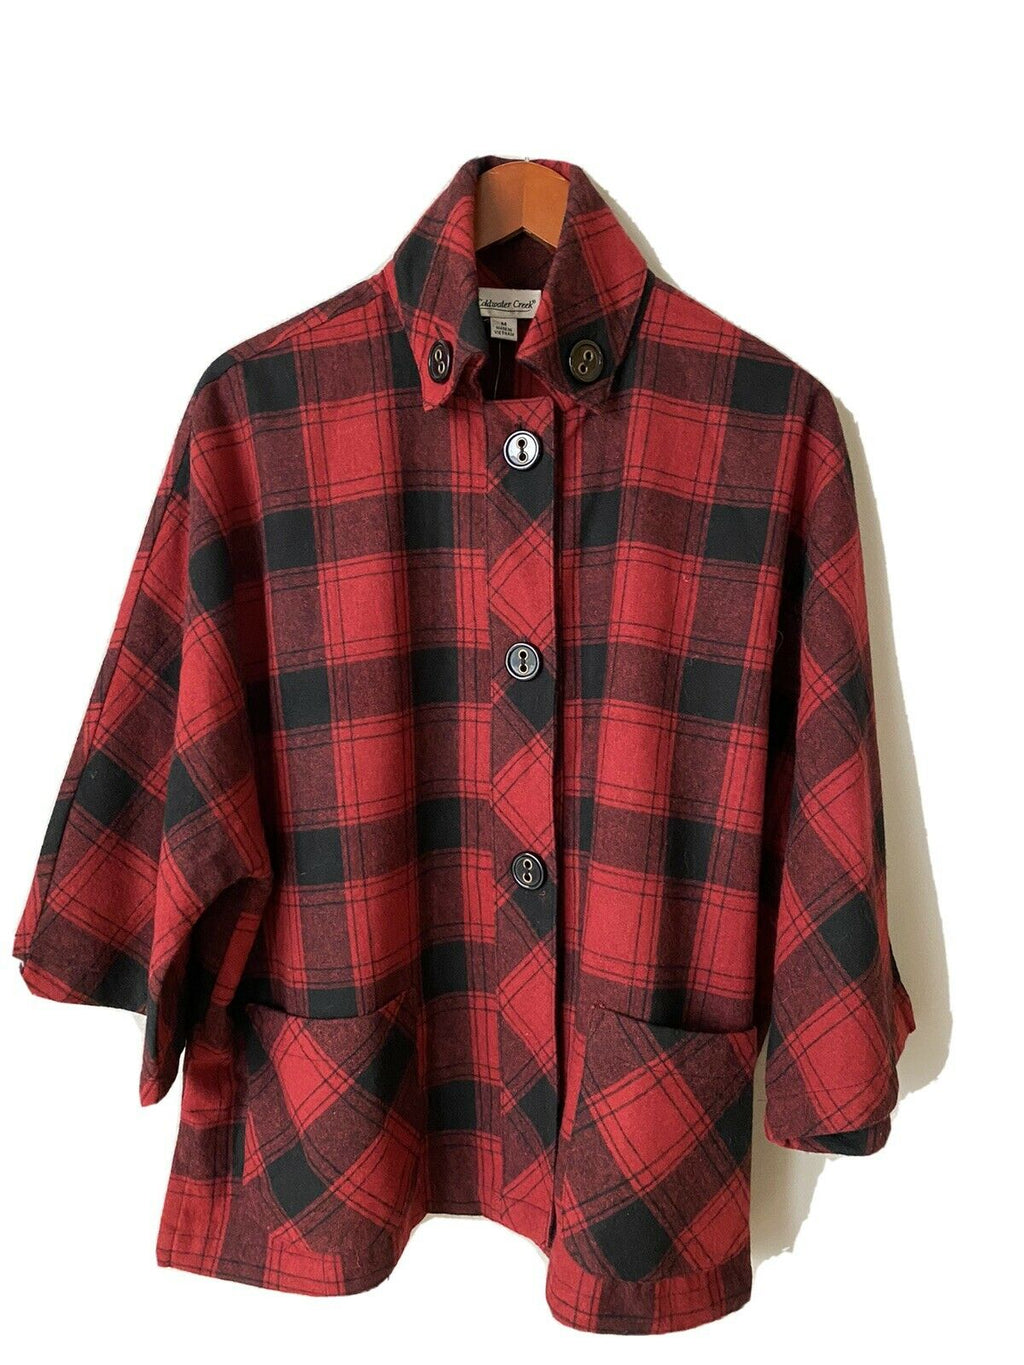 Coldwater Creek Women's Medium Red Black Jacket 3/4 Wool Buffalo Check Coat NWT